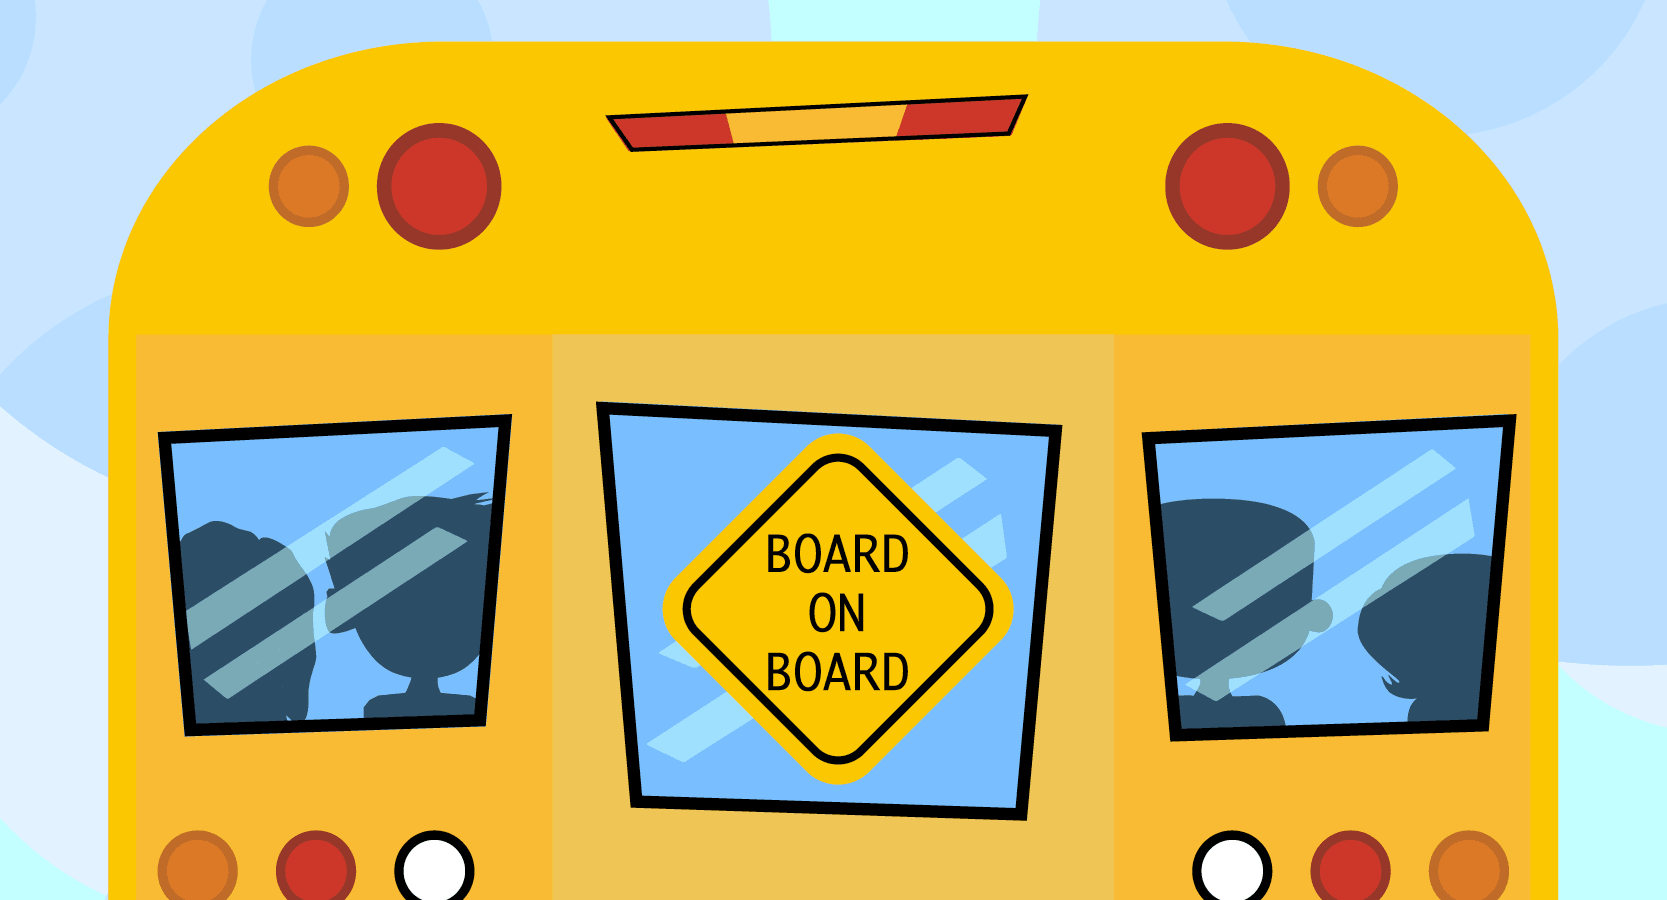 Get Your Board on Board